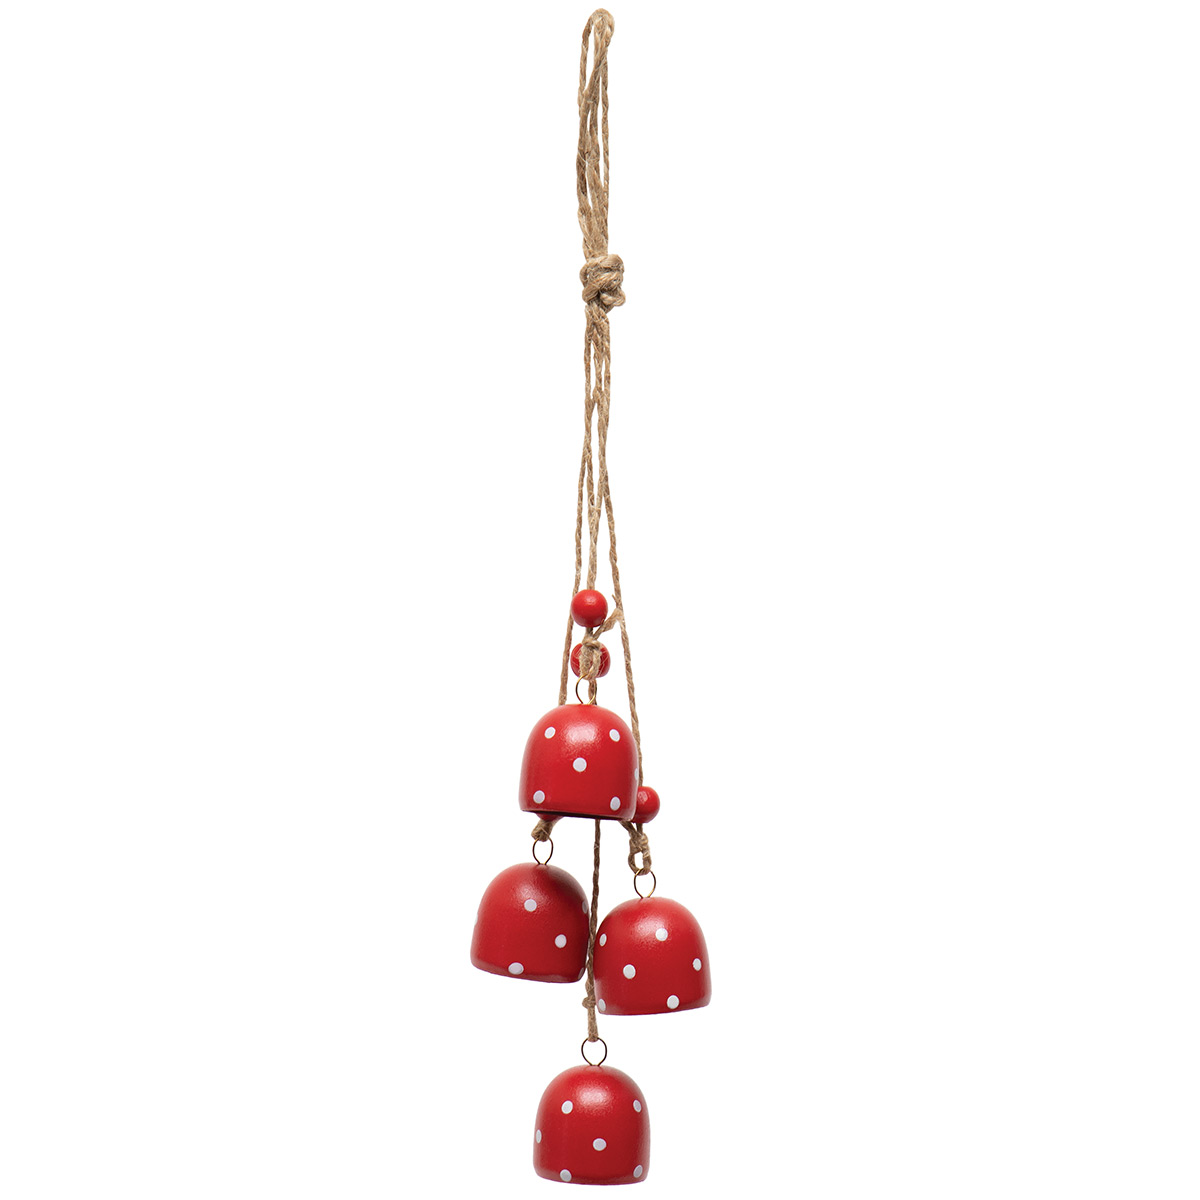 ALPINE BELL CLUSTER METAL HANGING ORNAMENT RED/WHITE